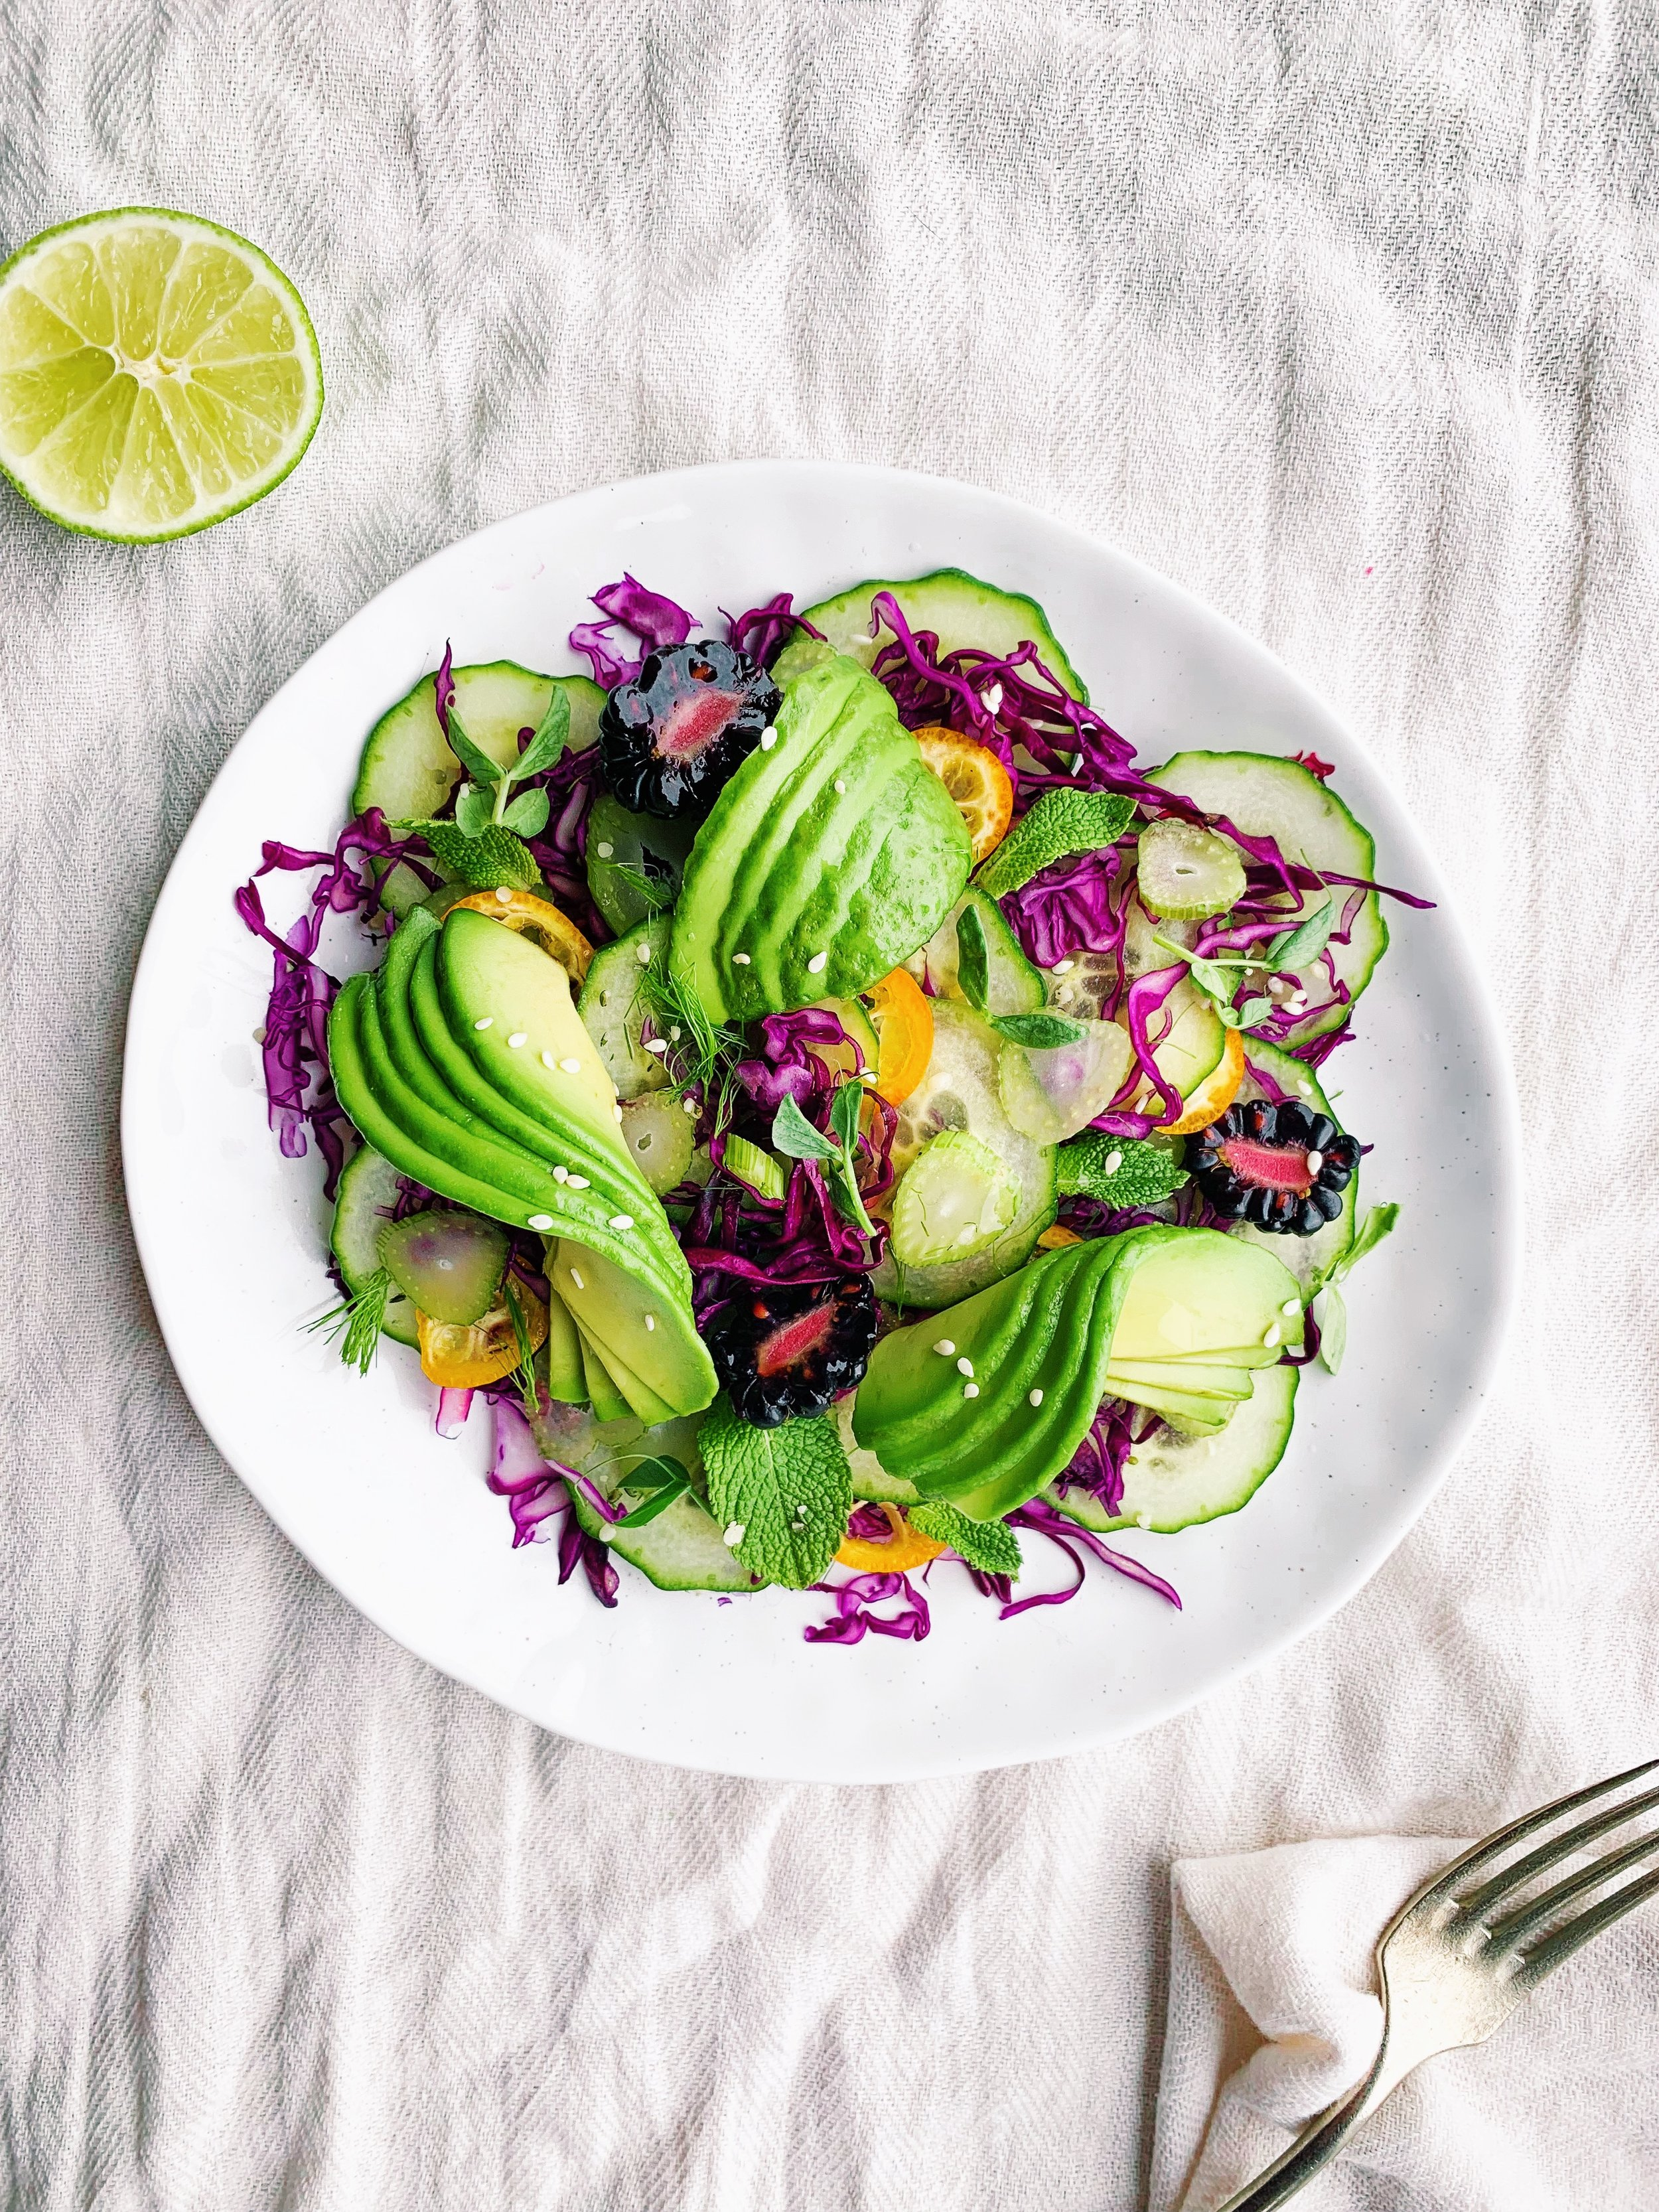 Cabbage, Fennel and Avocado Salad with Citrus and Lime - A seasonal salad when you're craving raw veggies, but you still want to enjoy all that this season has to offer! Foody First Beth Bierema #avocado #salad #whole30 #fennel #paleo #raw #vegan #plantbased #glutenfree #dairyfree